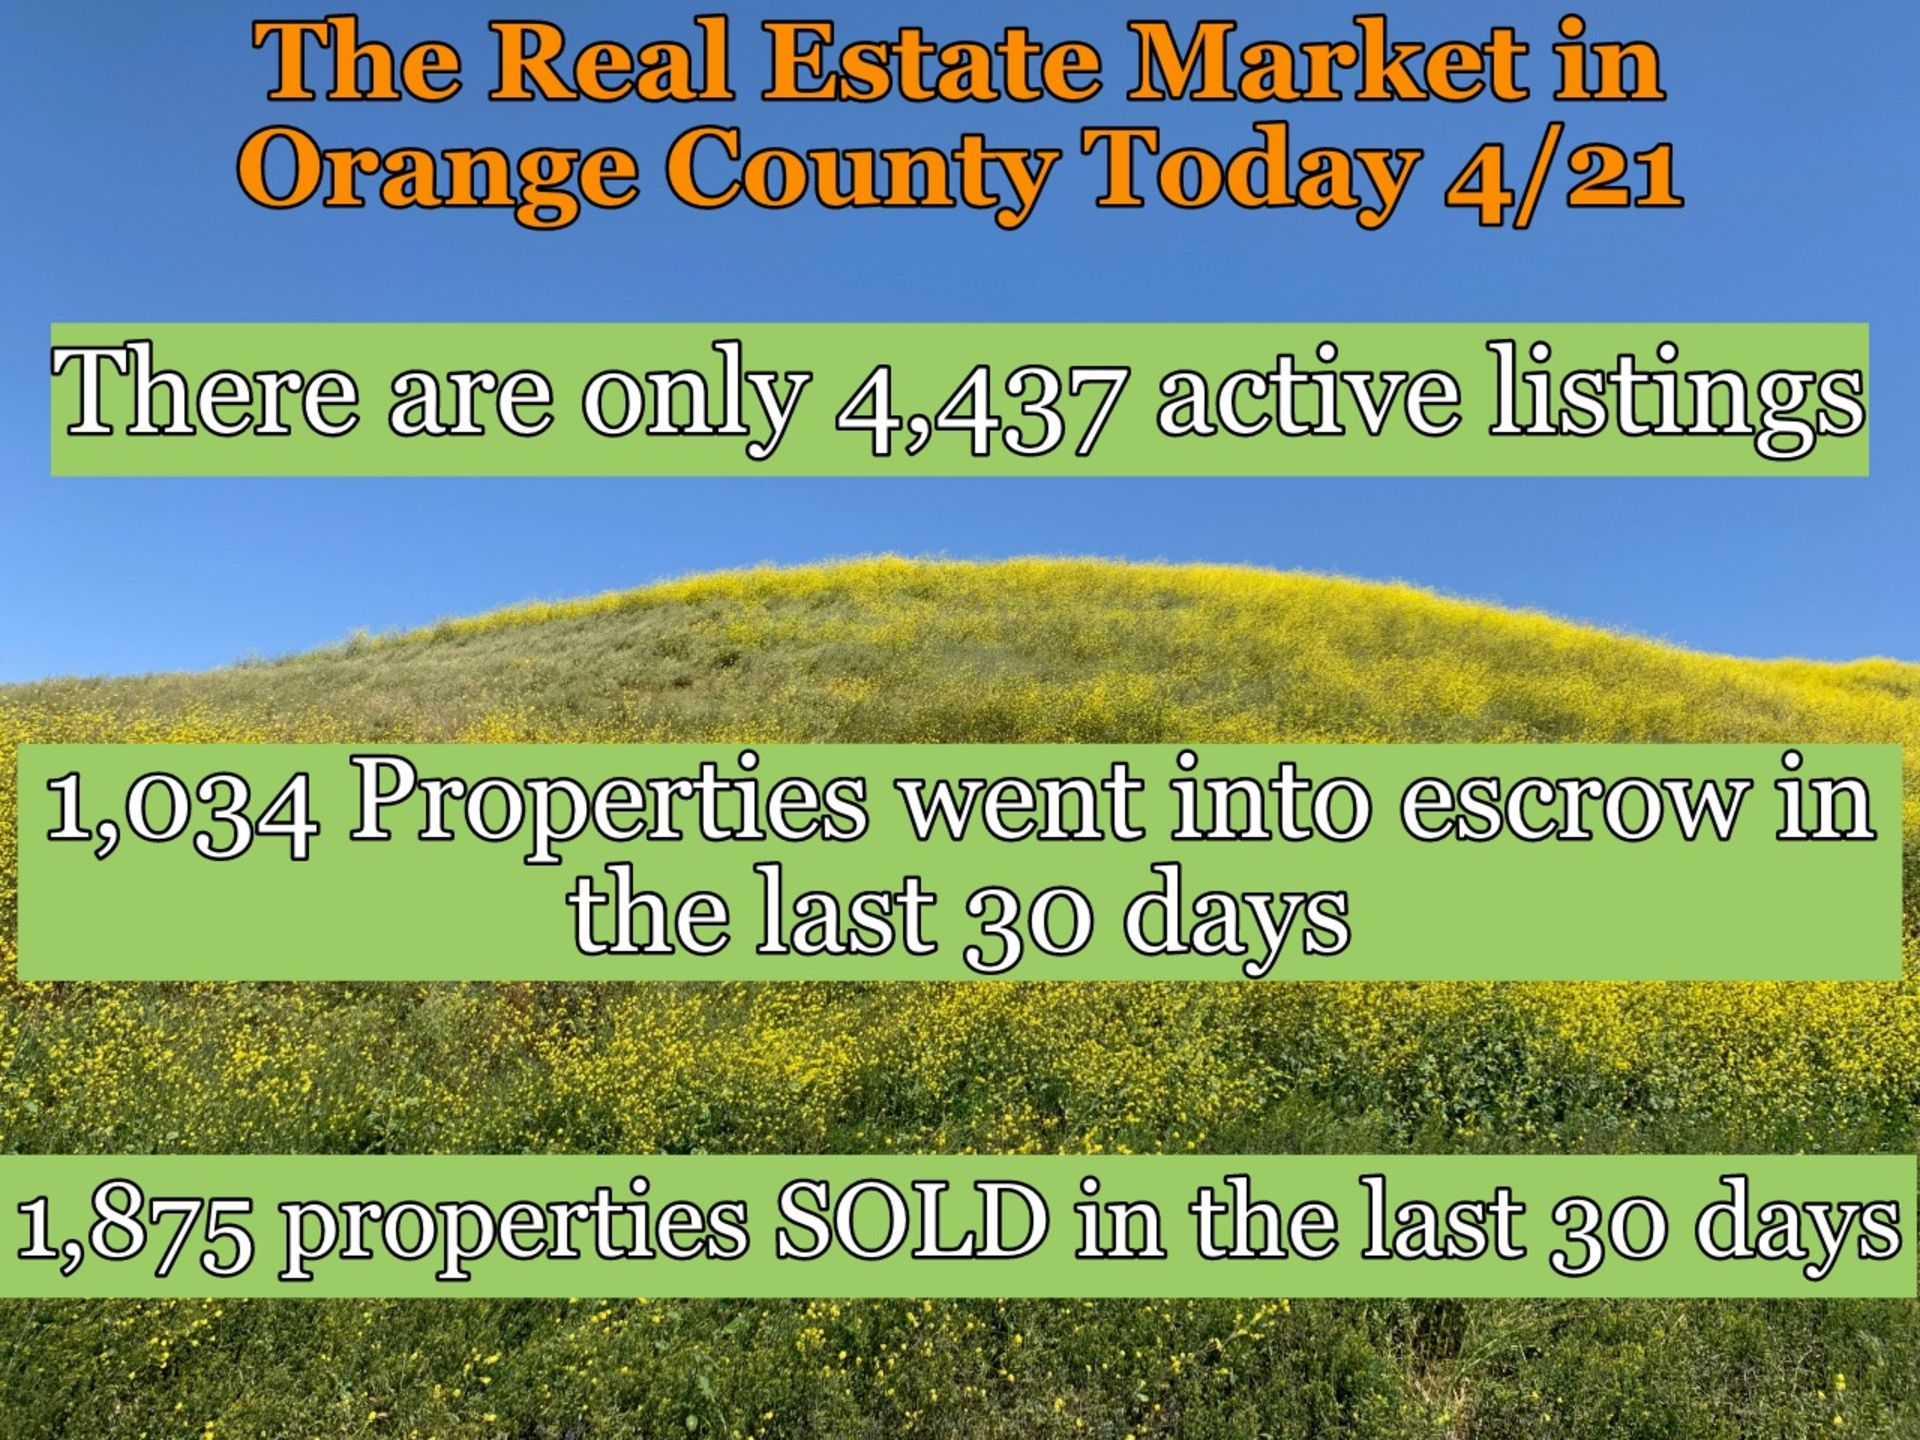 The REAL Real Estate Market Today in Orange County